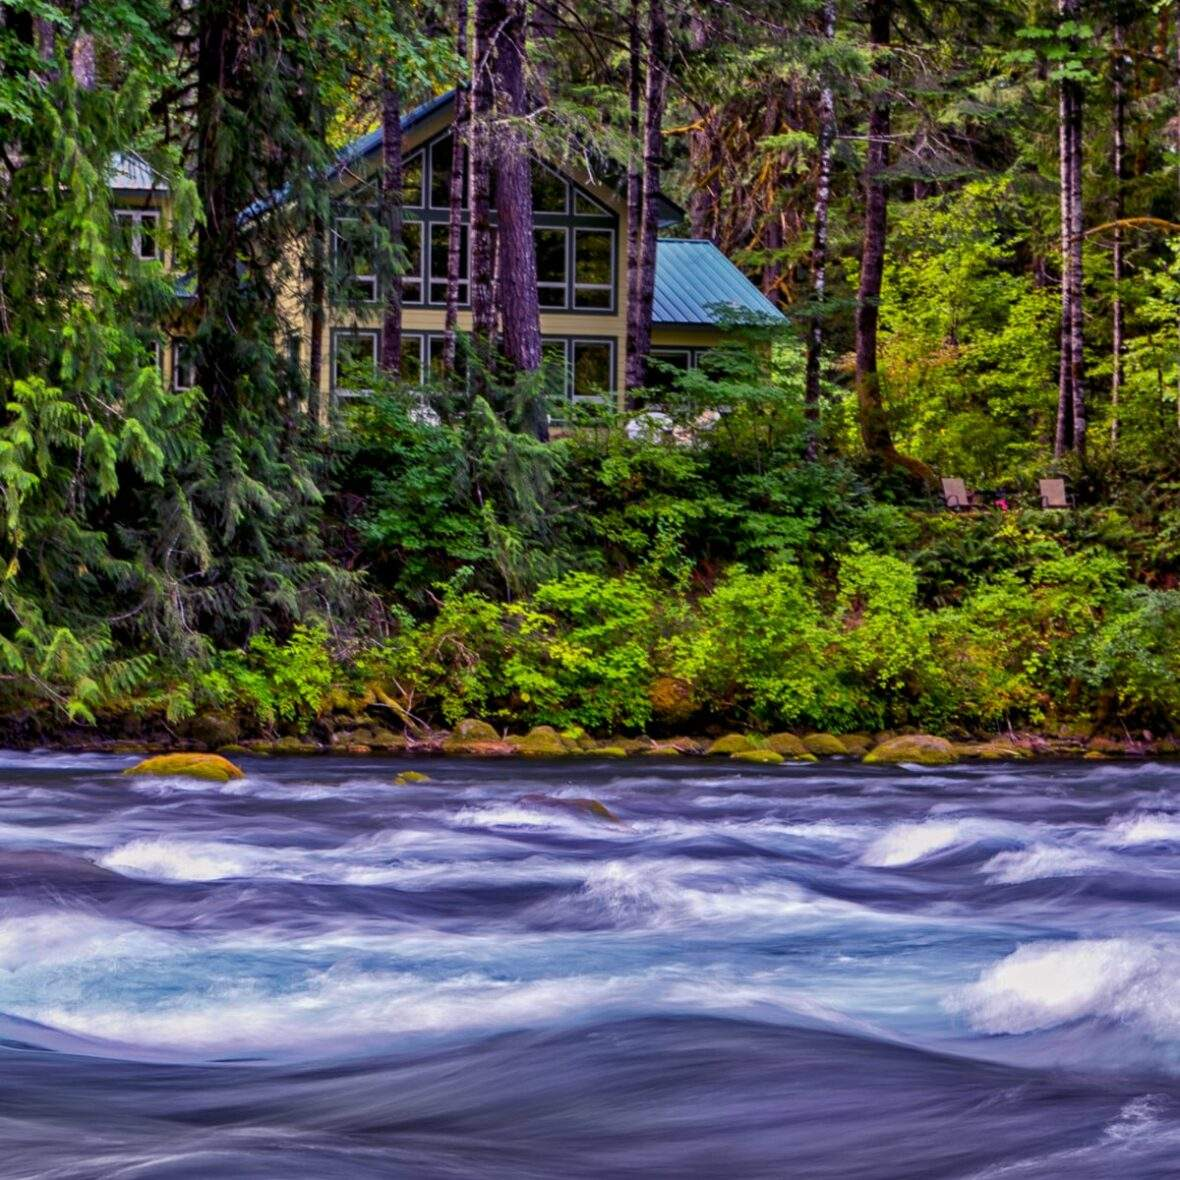 Vacation home off of McKenzie River in Oregon